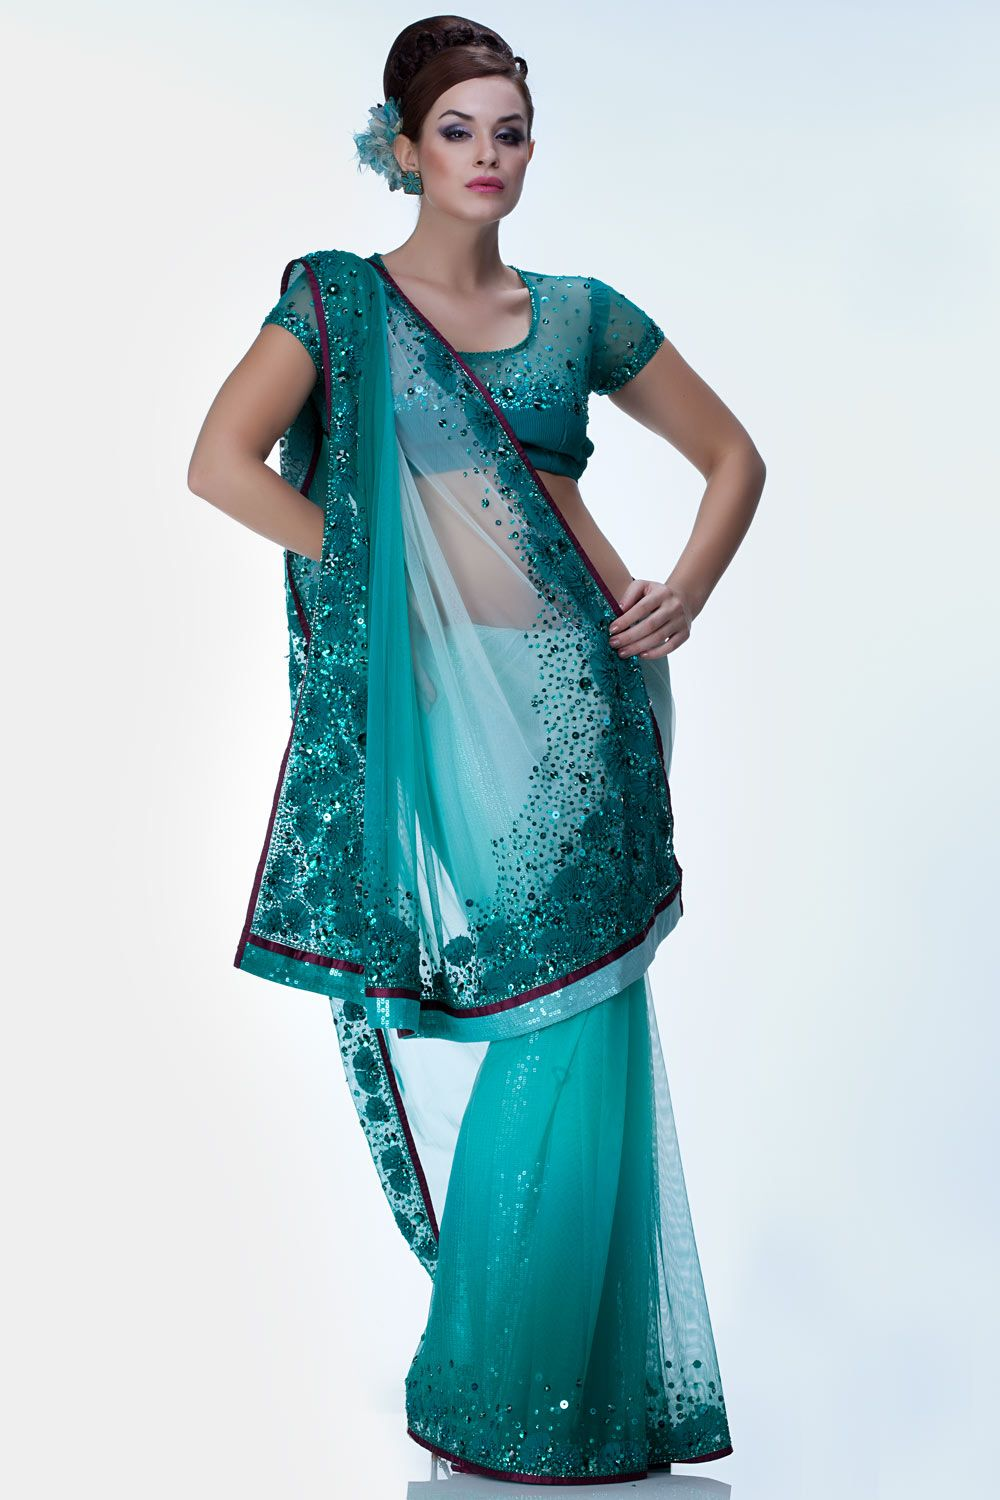 Designed by Satya Paul. This saree is a conceptual design product that shows embroidery inspired by elements of the sea. The pleats signify the texture on shells as they are embedded to the border.